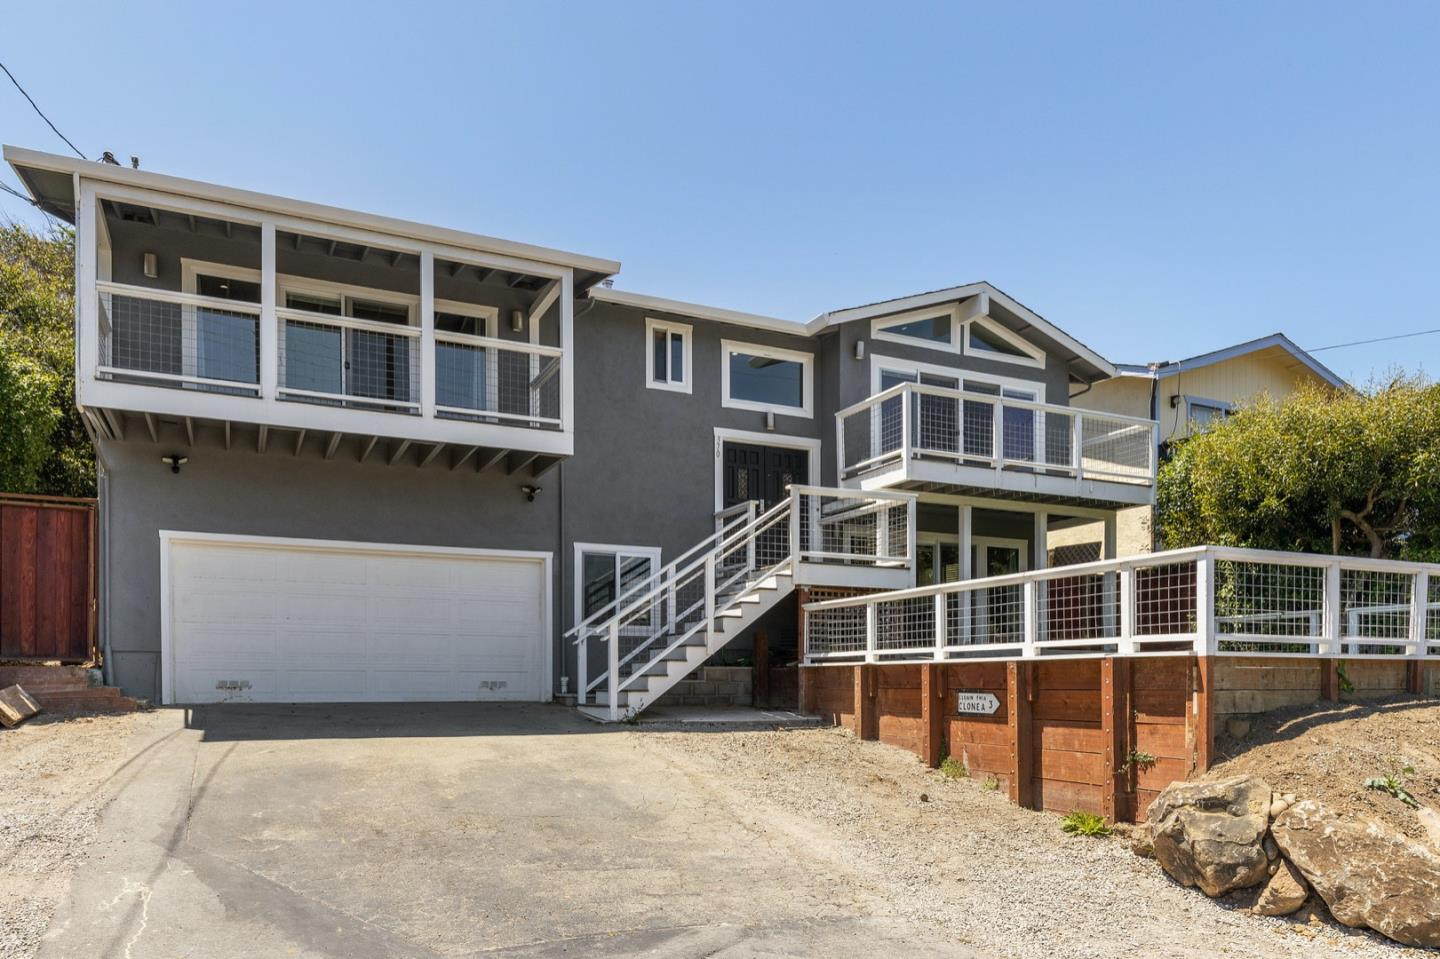 Stunning newly remodeled home with ocean views! The bright and open living space offers vaulted ceilings, recessed lighting, and beautiful flooring. The large chef's kitchen features lovely white cabinetry, a large center island perfect for entertaining, and custom finishes. The main bedroom serves as in-home retreat, with a private ocean view balcony and a luxurious en-suite bathroom. Four additional spacious bedrooms and a family room offer ample space for family or hosting guests. Spacious front and back yard areas offer the perfect space for outdoor living and entertaining. Soak in the sun setting over the ocean from the comfort of your own home! Perfectly located in a quiet neighborhood, just blocks from the stunning Pacific Ocean coastline and HWY 1 for easy commuting.